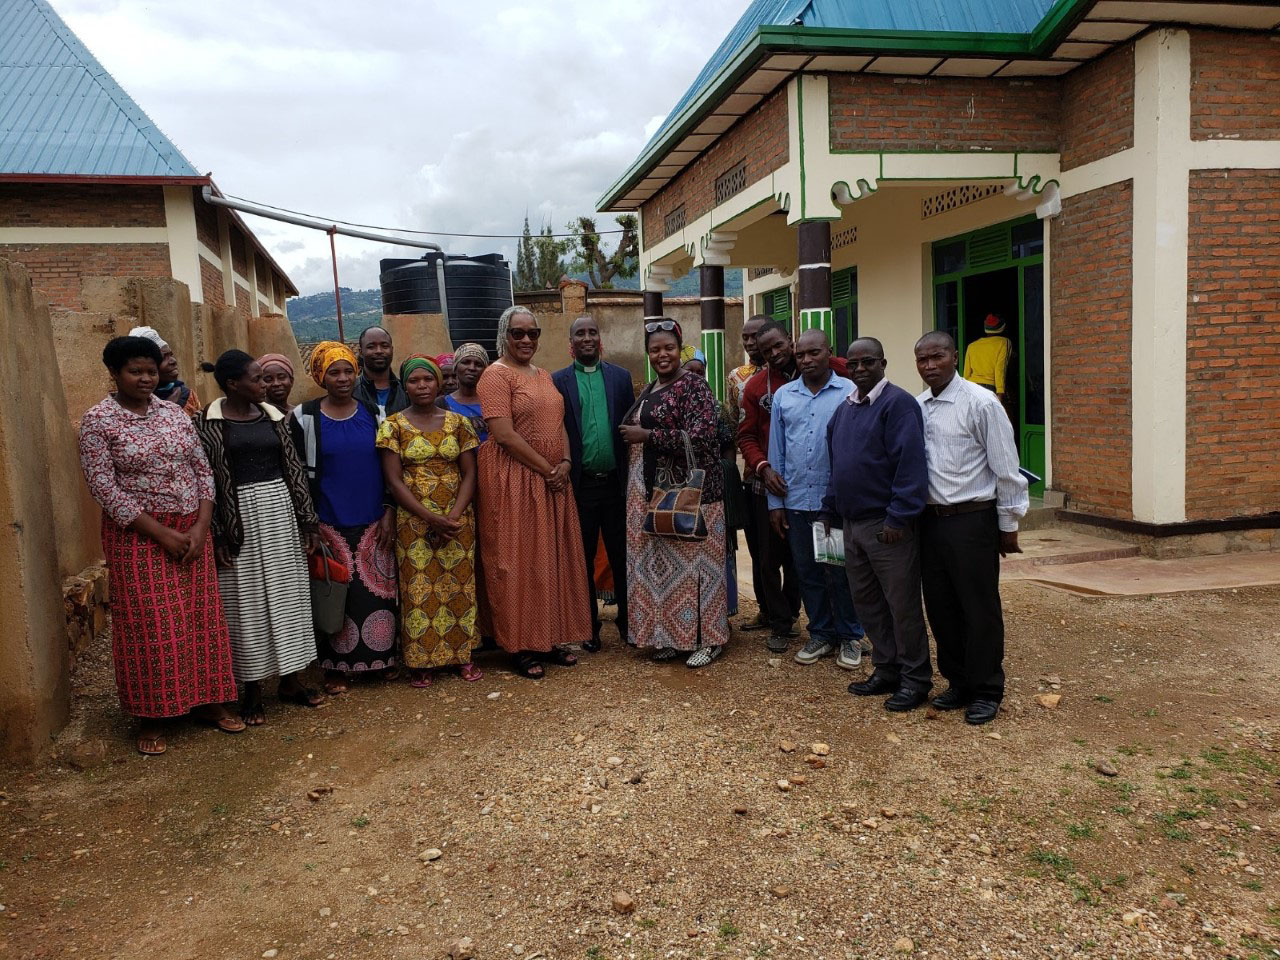 A group picture of some of the members of the savings program at Sure Parish, in the Rubengera Presbytery.